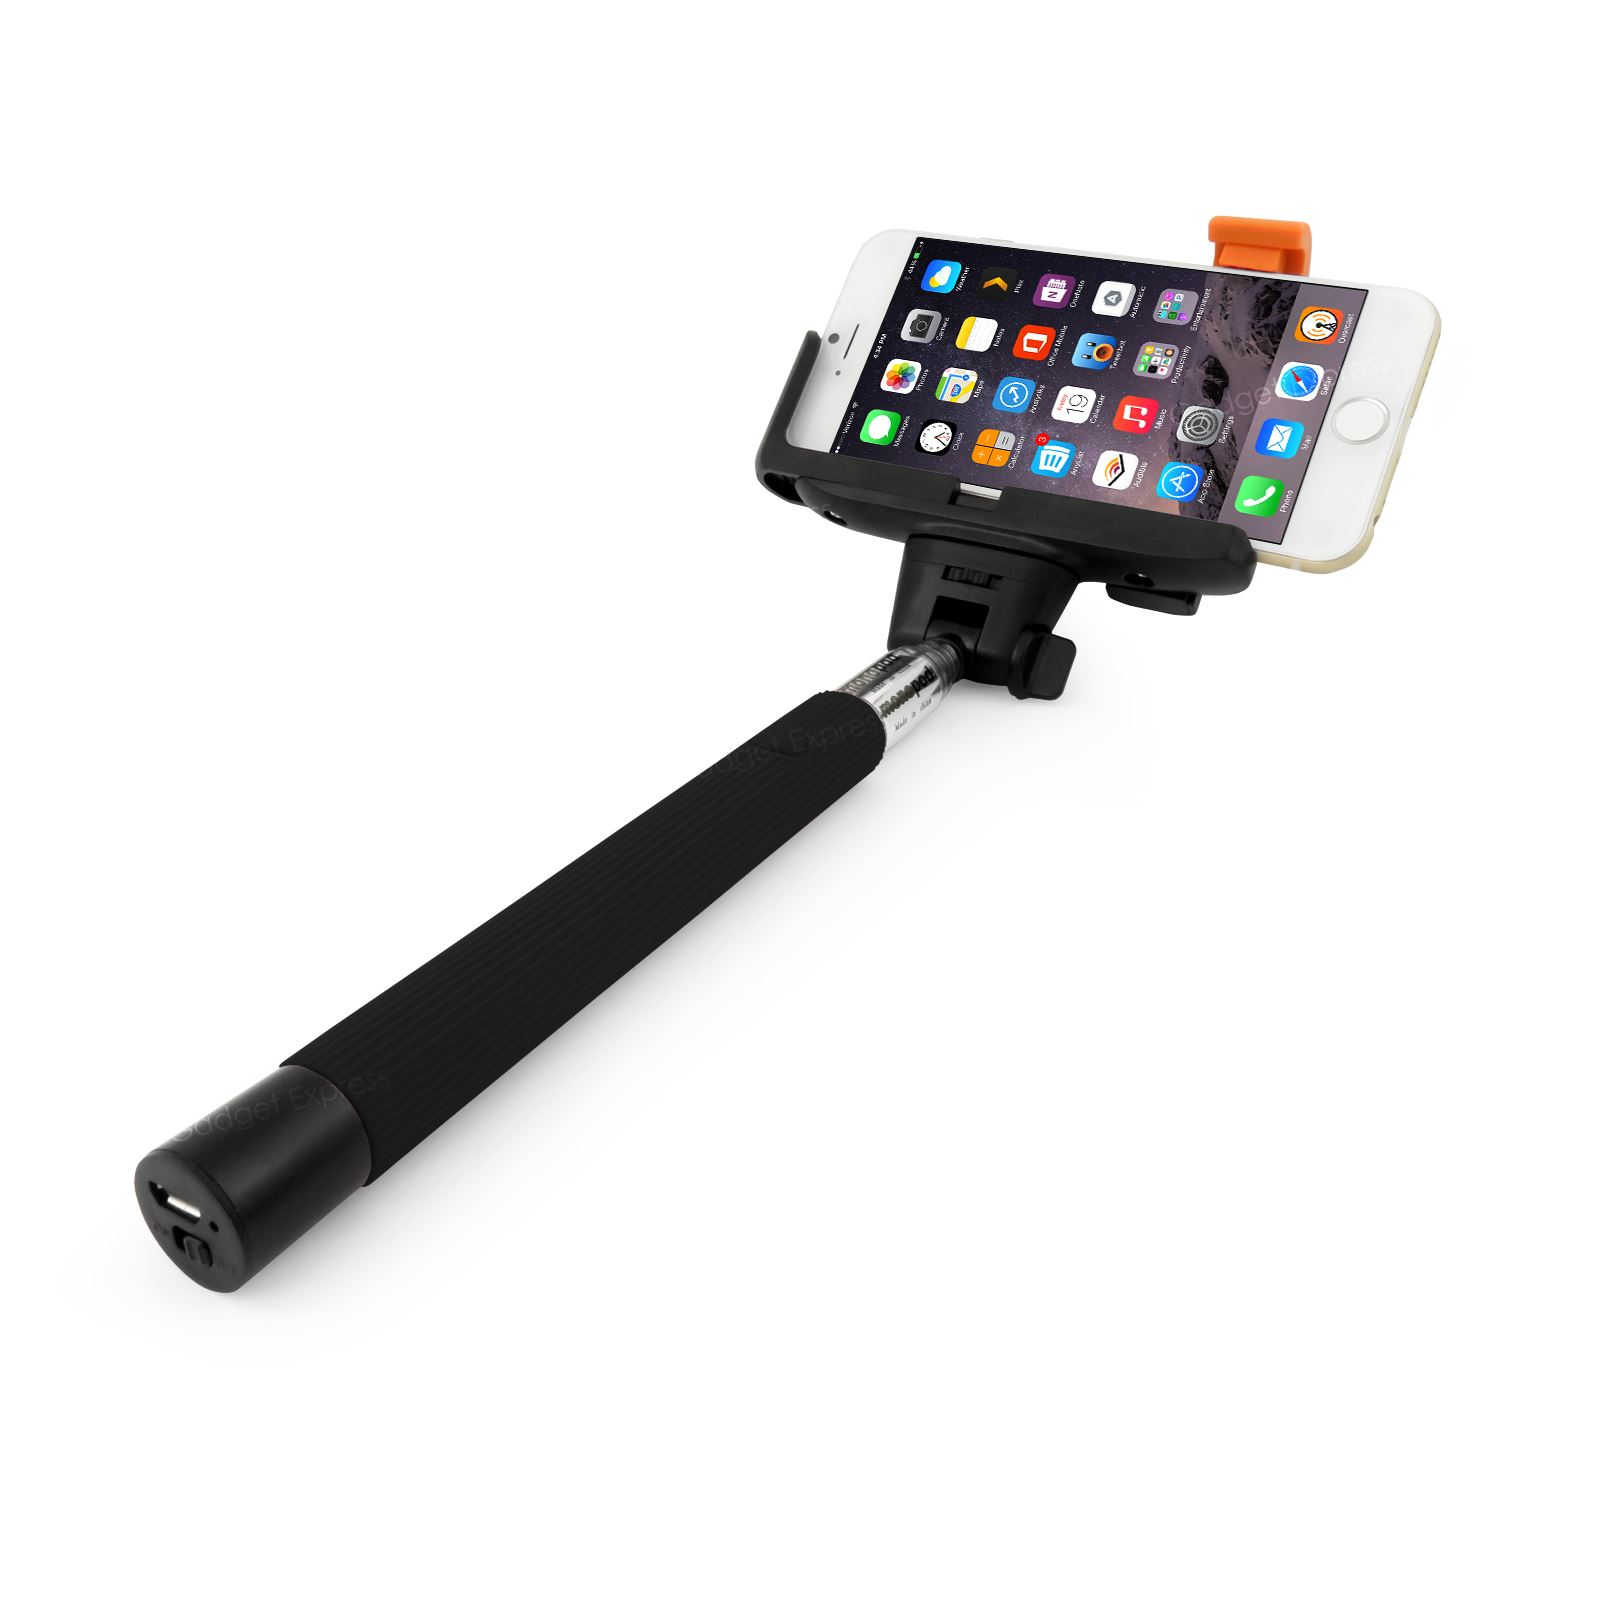 extendable monopod handheld self portrait selfie stick holder for iphone samsung ebay. Black Bedroom Furniture Sets. Home Design Ideas